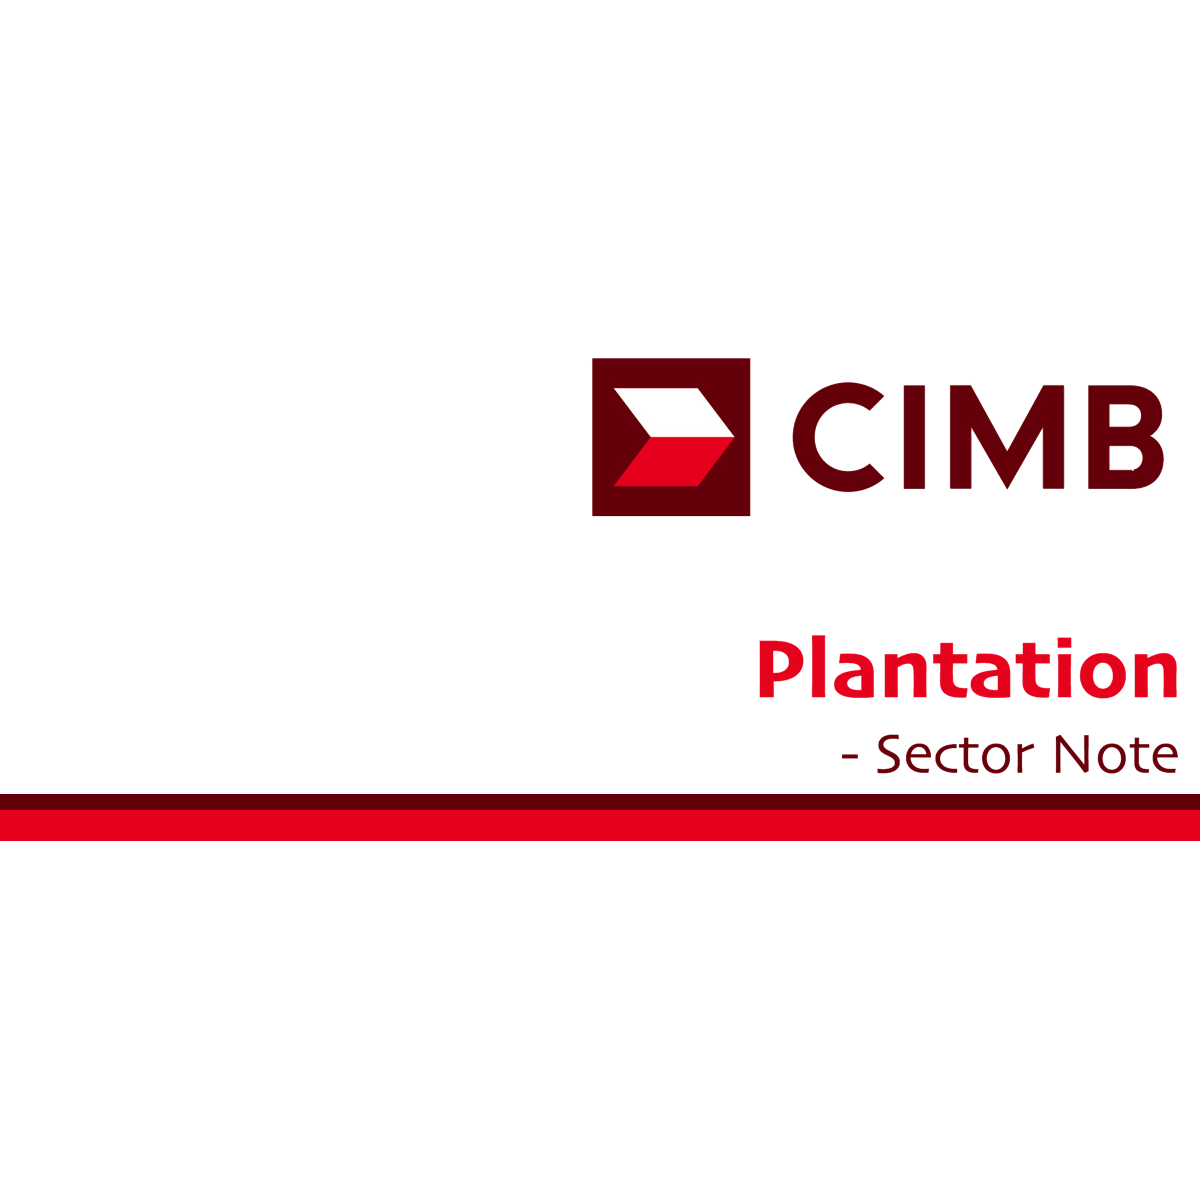 Agribusiness - CGS-CIMB Research 2018-06-20: Potential Impact Of India Duties Revision On Palm Oil